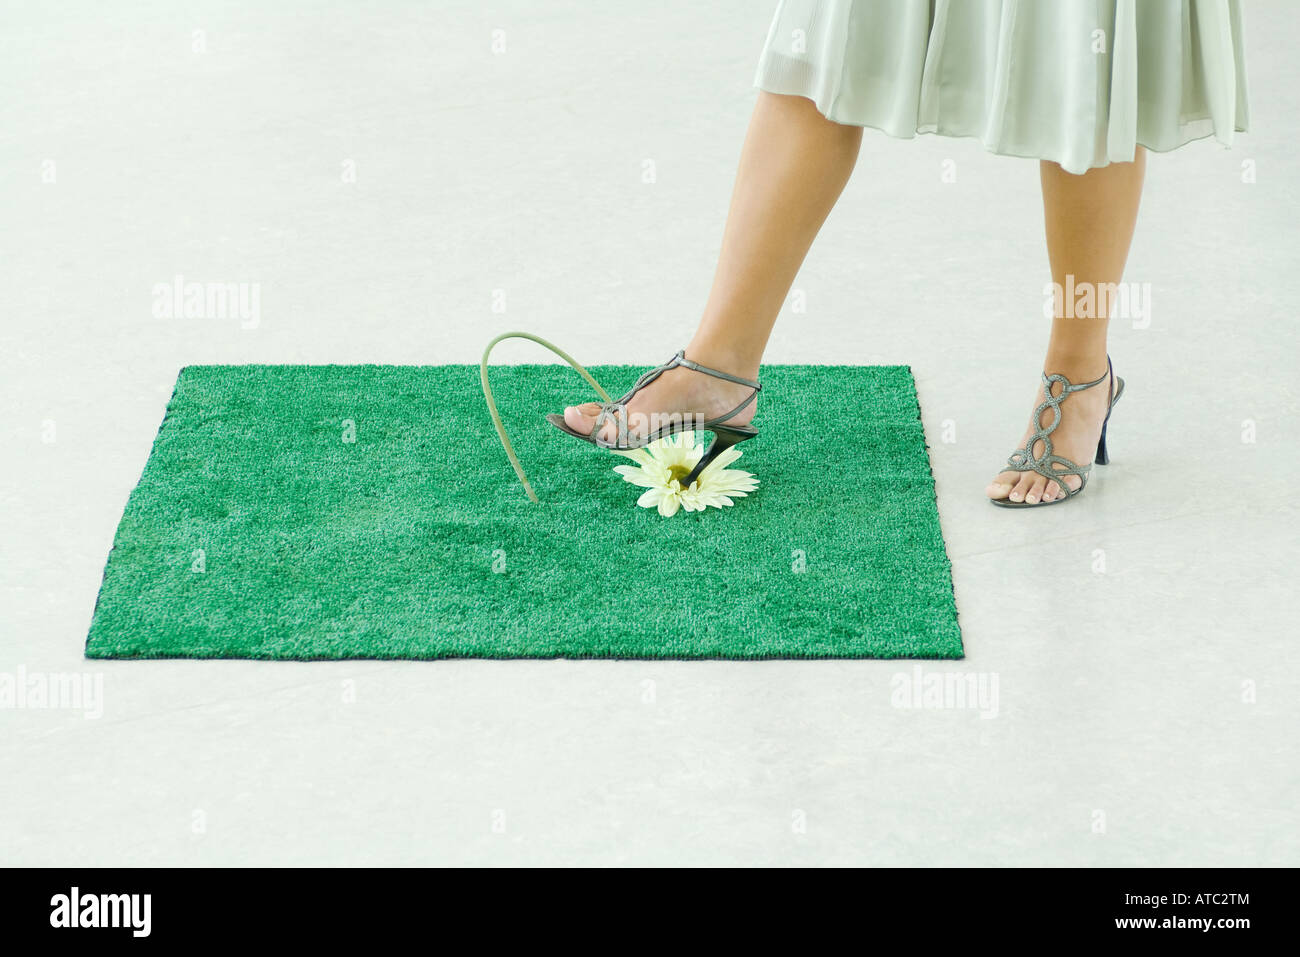 Woman sticking heel into flower on square of artificial turf, low section - Stock Image